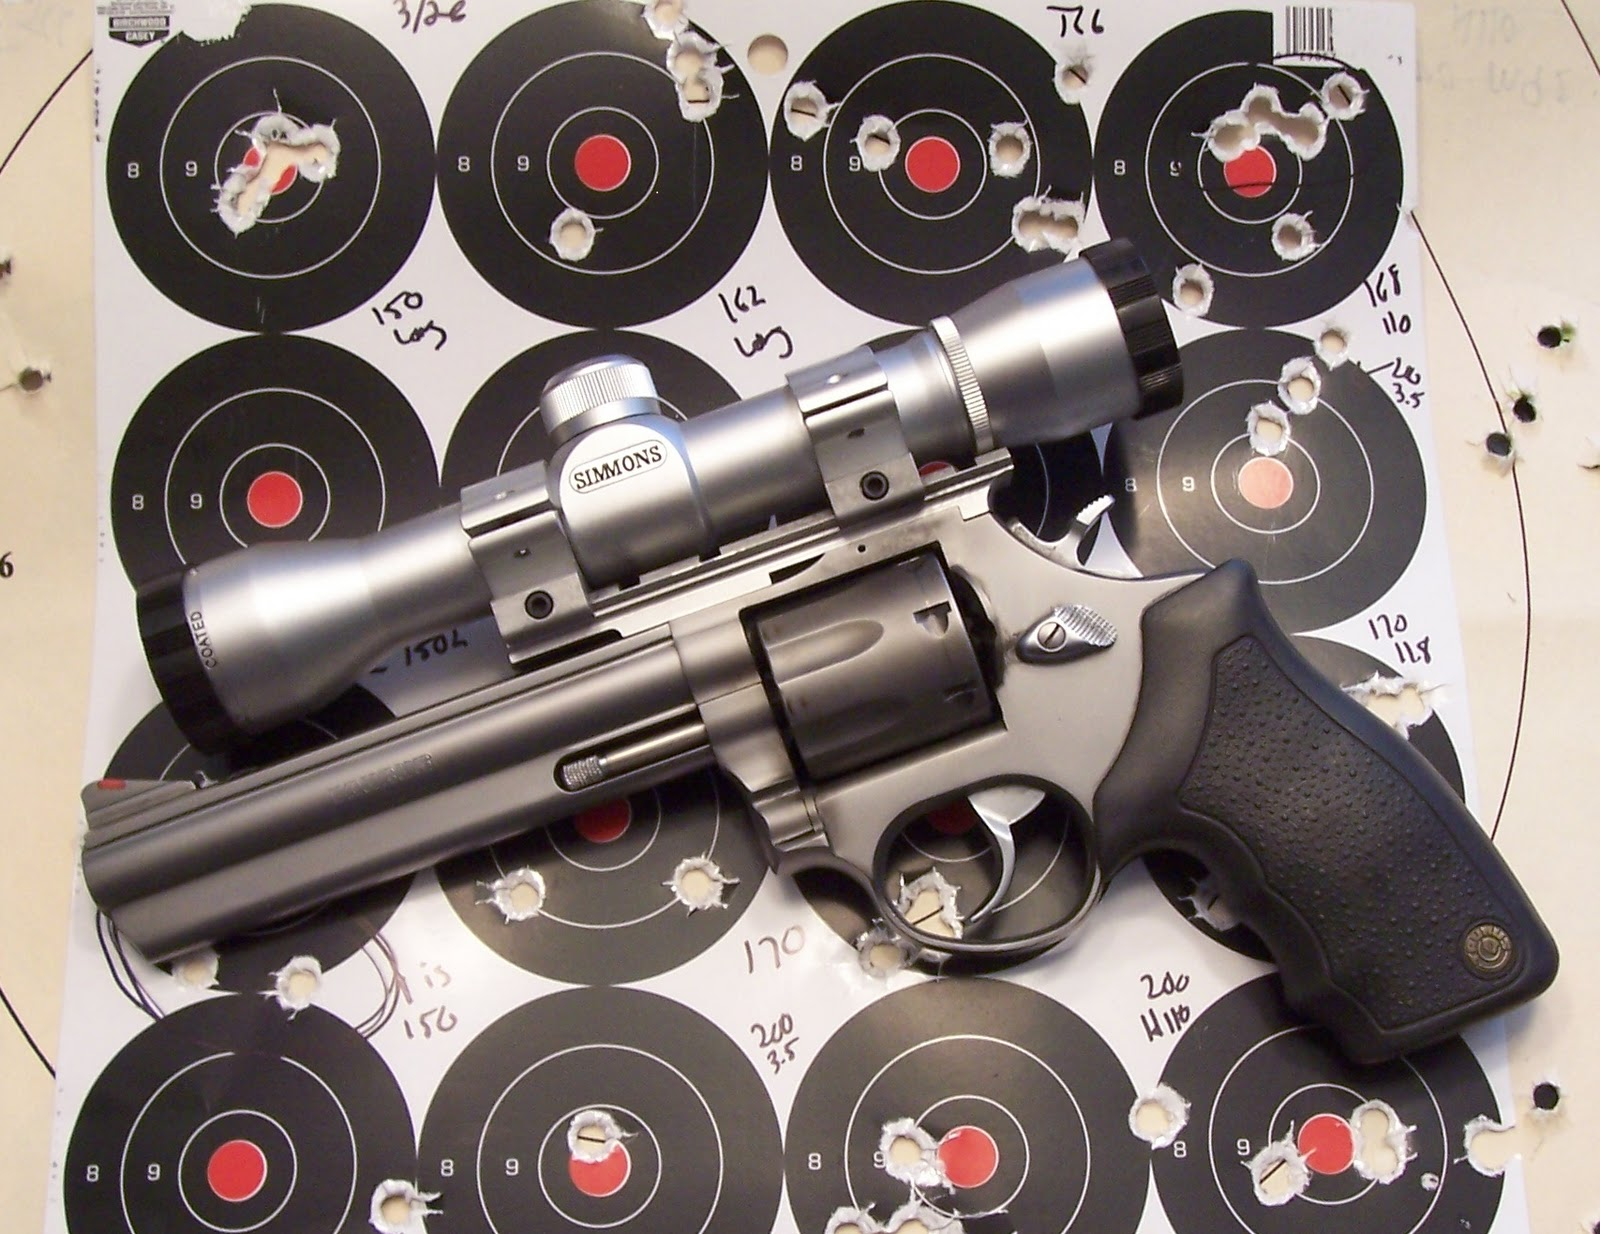 Cast Bullets and Reloading the 357 Magnum: Revolver & Rifle: Lyman